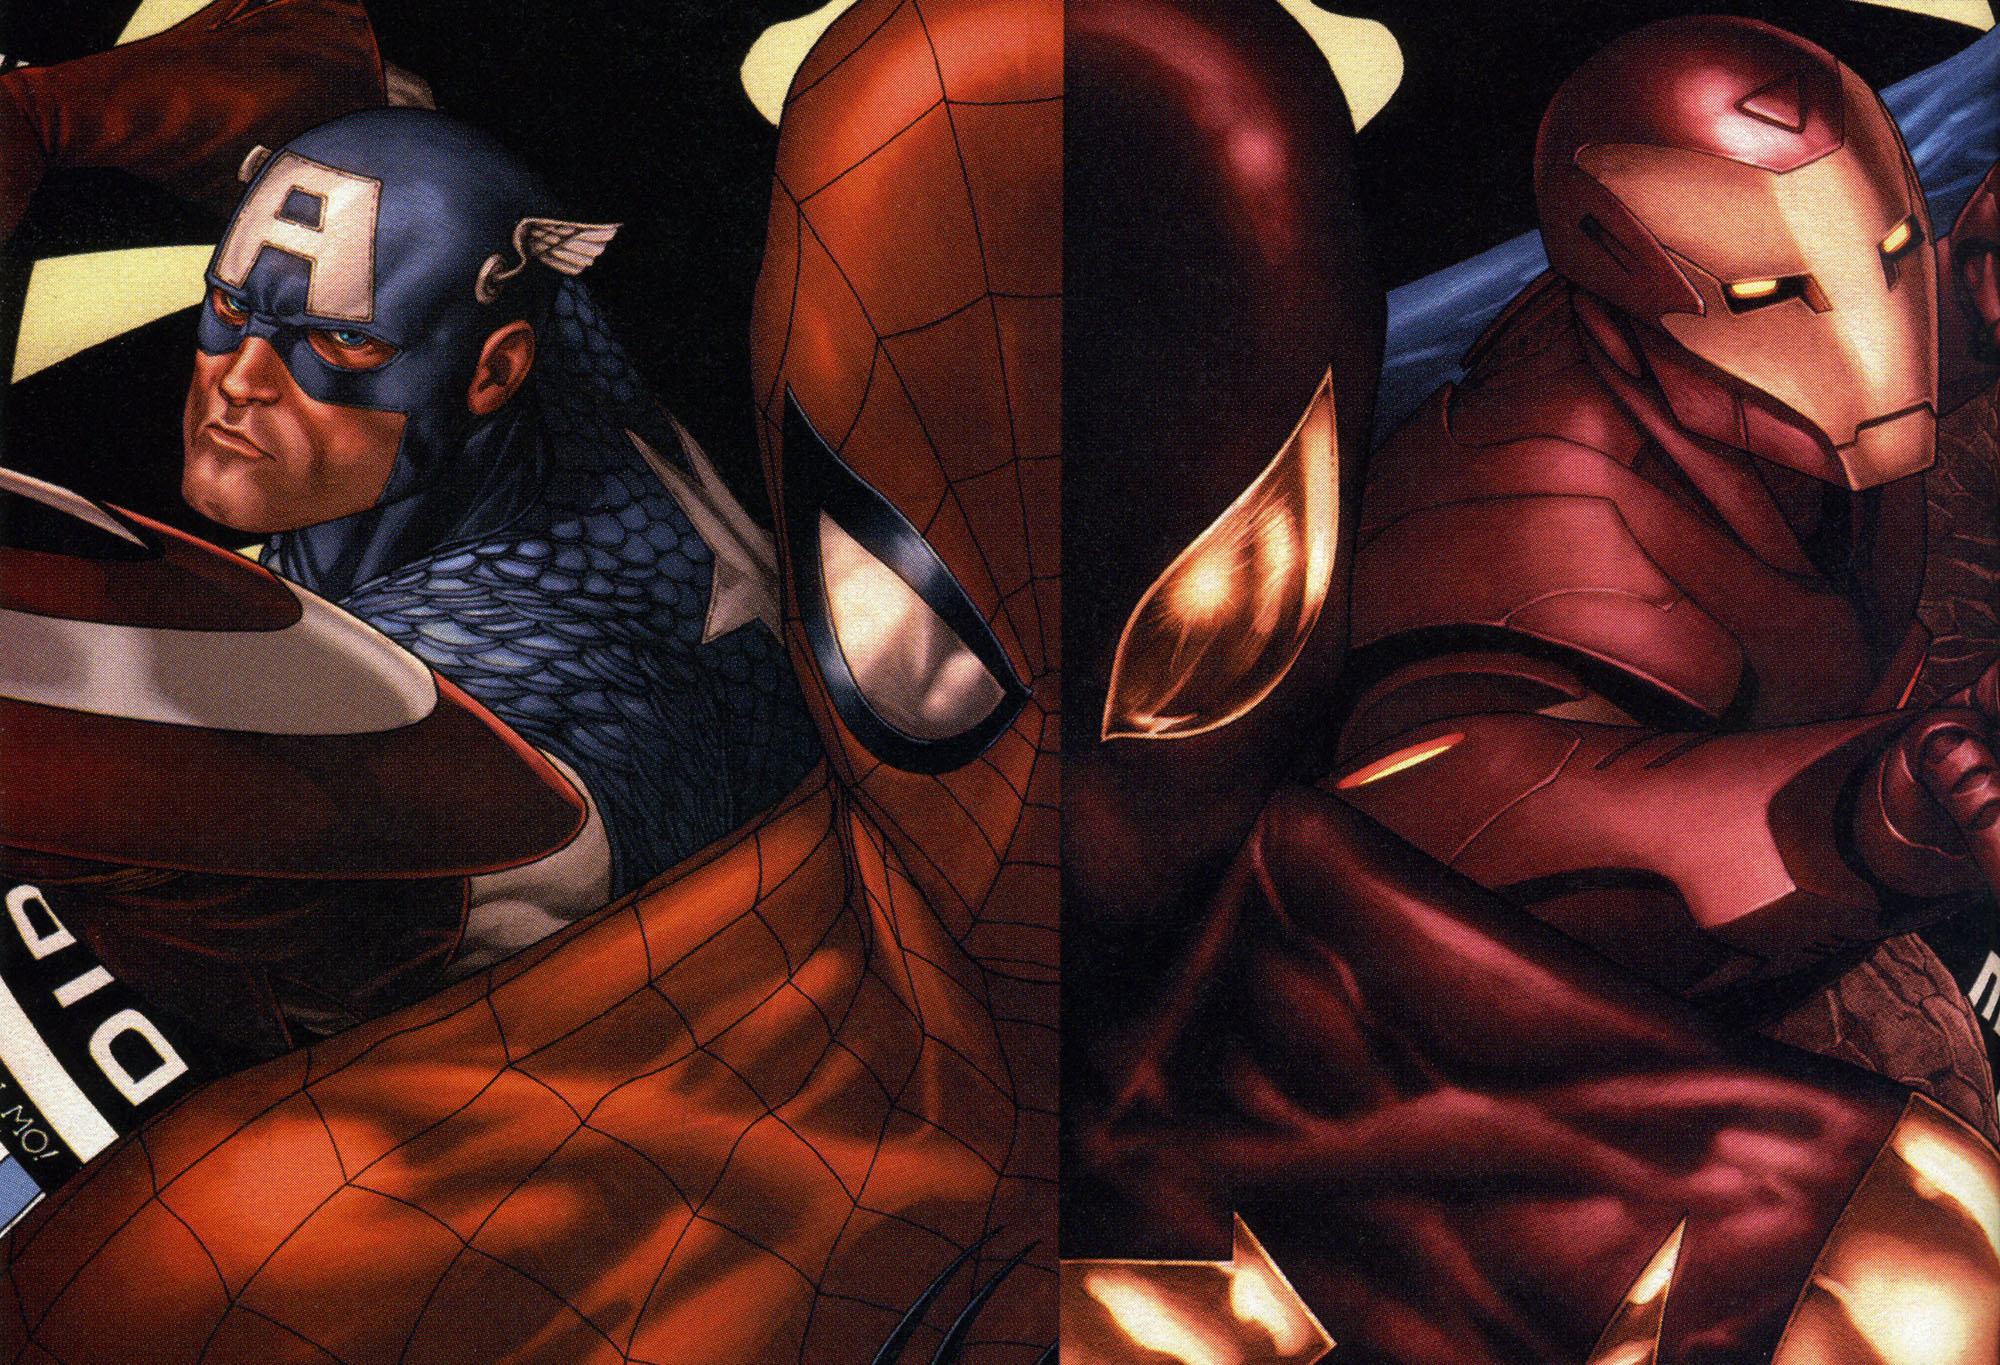 ...which ultimately means spidey, with his integral role in the Civil War comics storyline, will be making his debut in the third Captain America film...